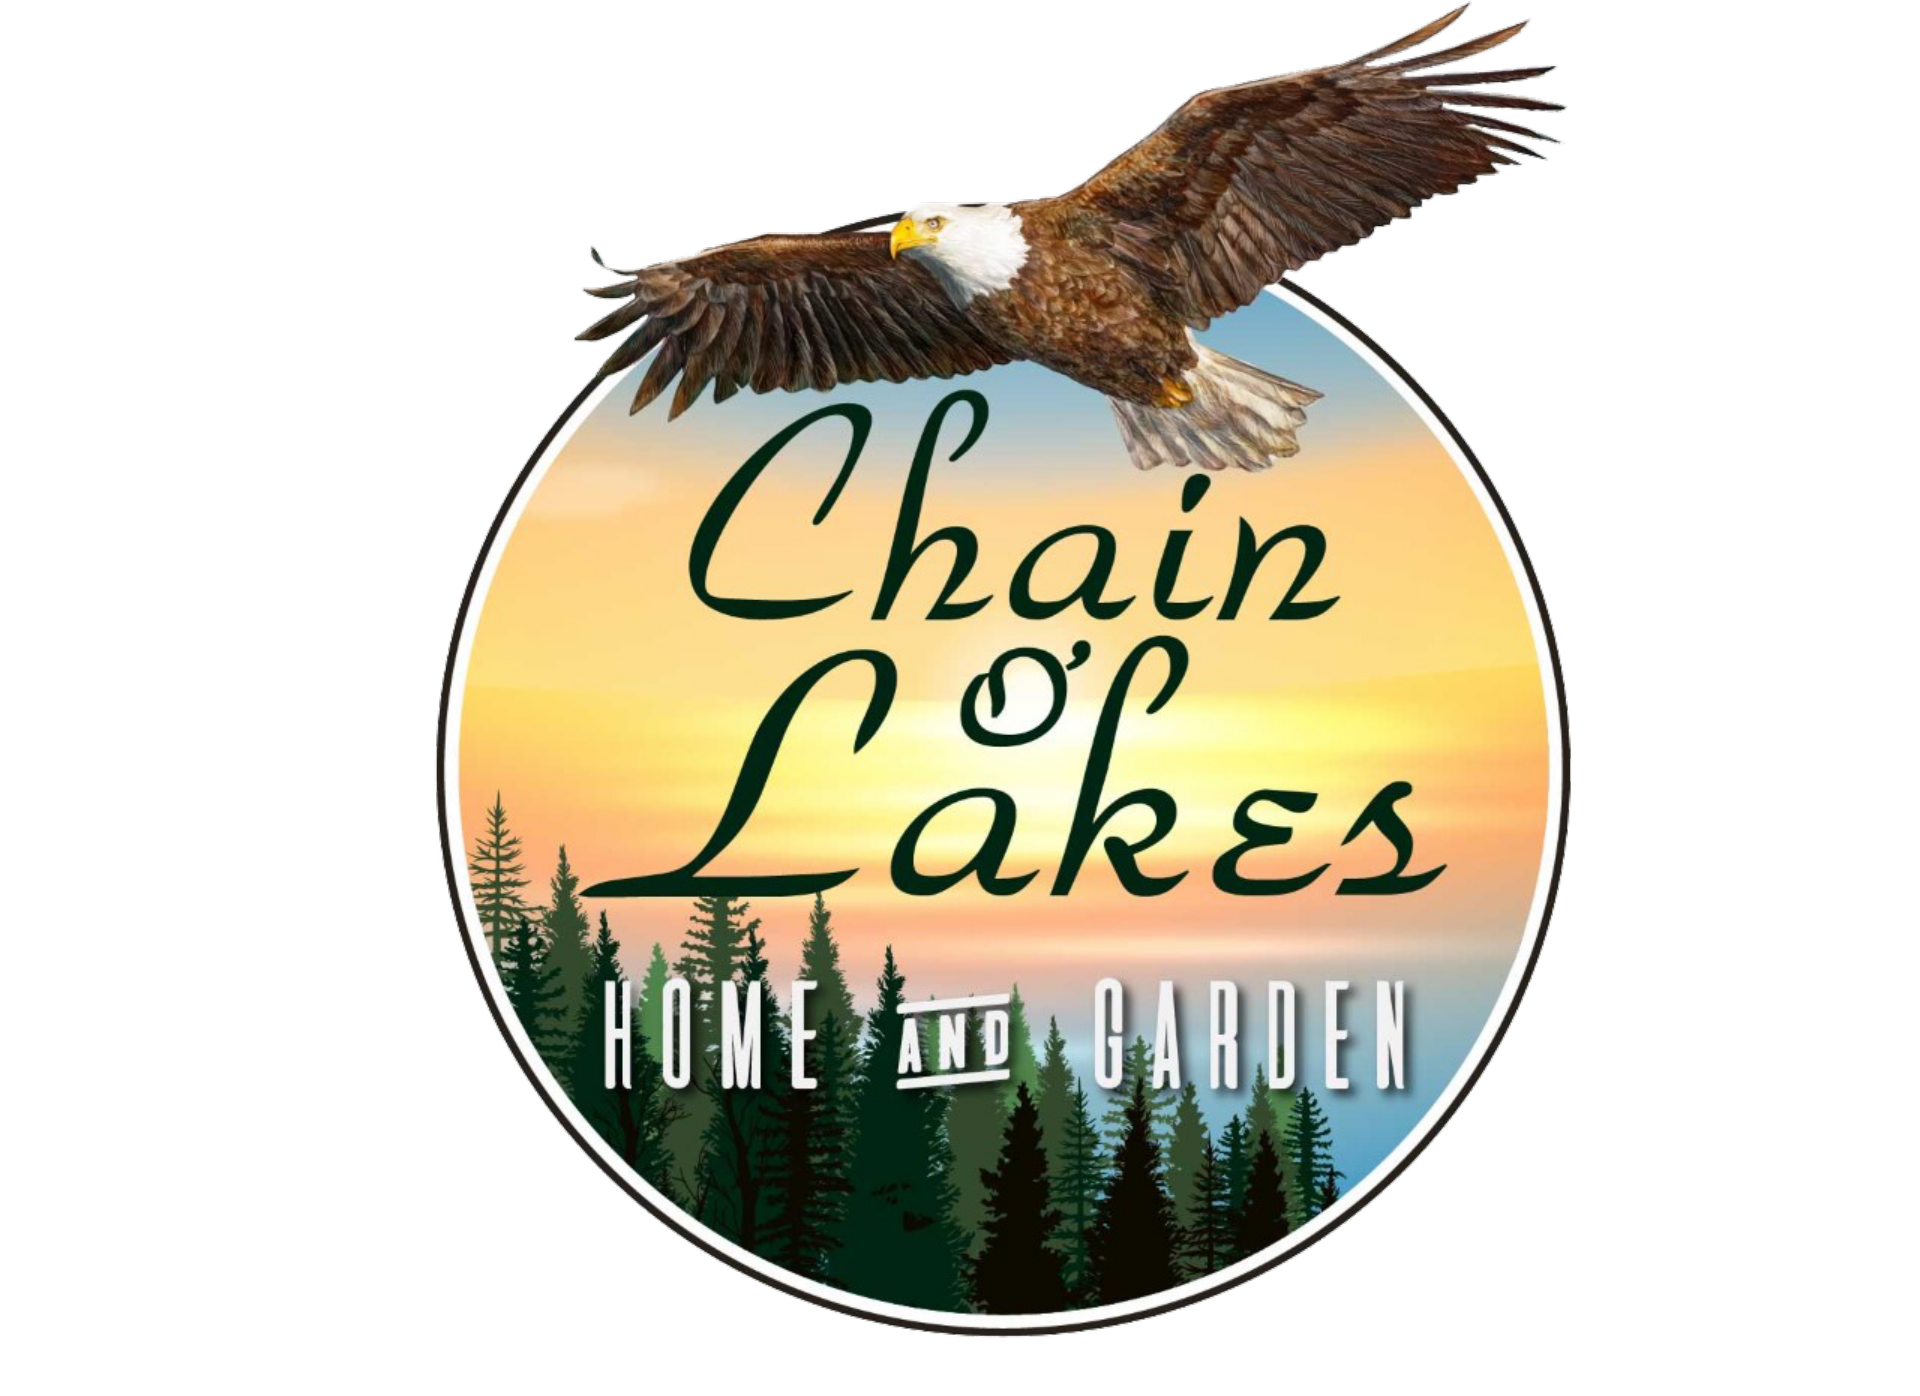 Chain o' Lakes Home and Garden